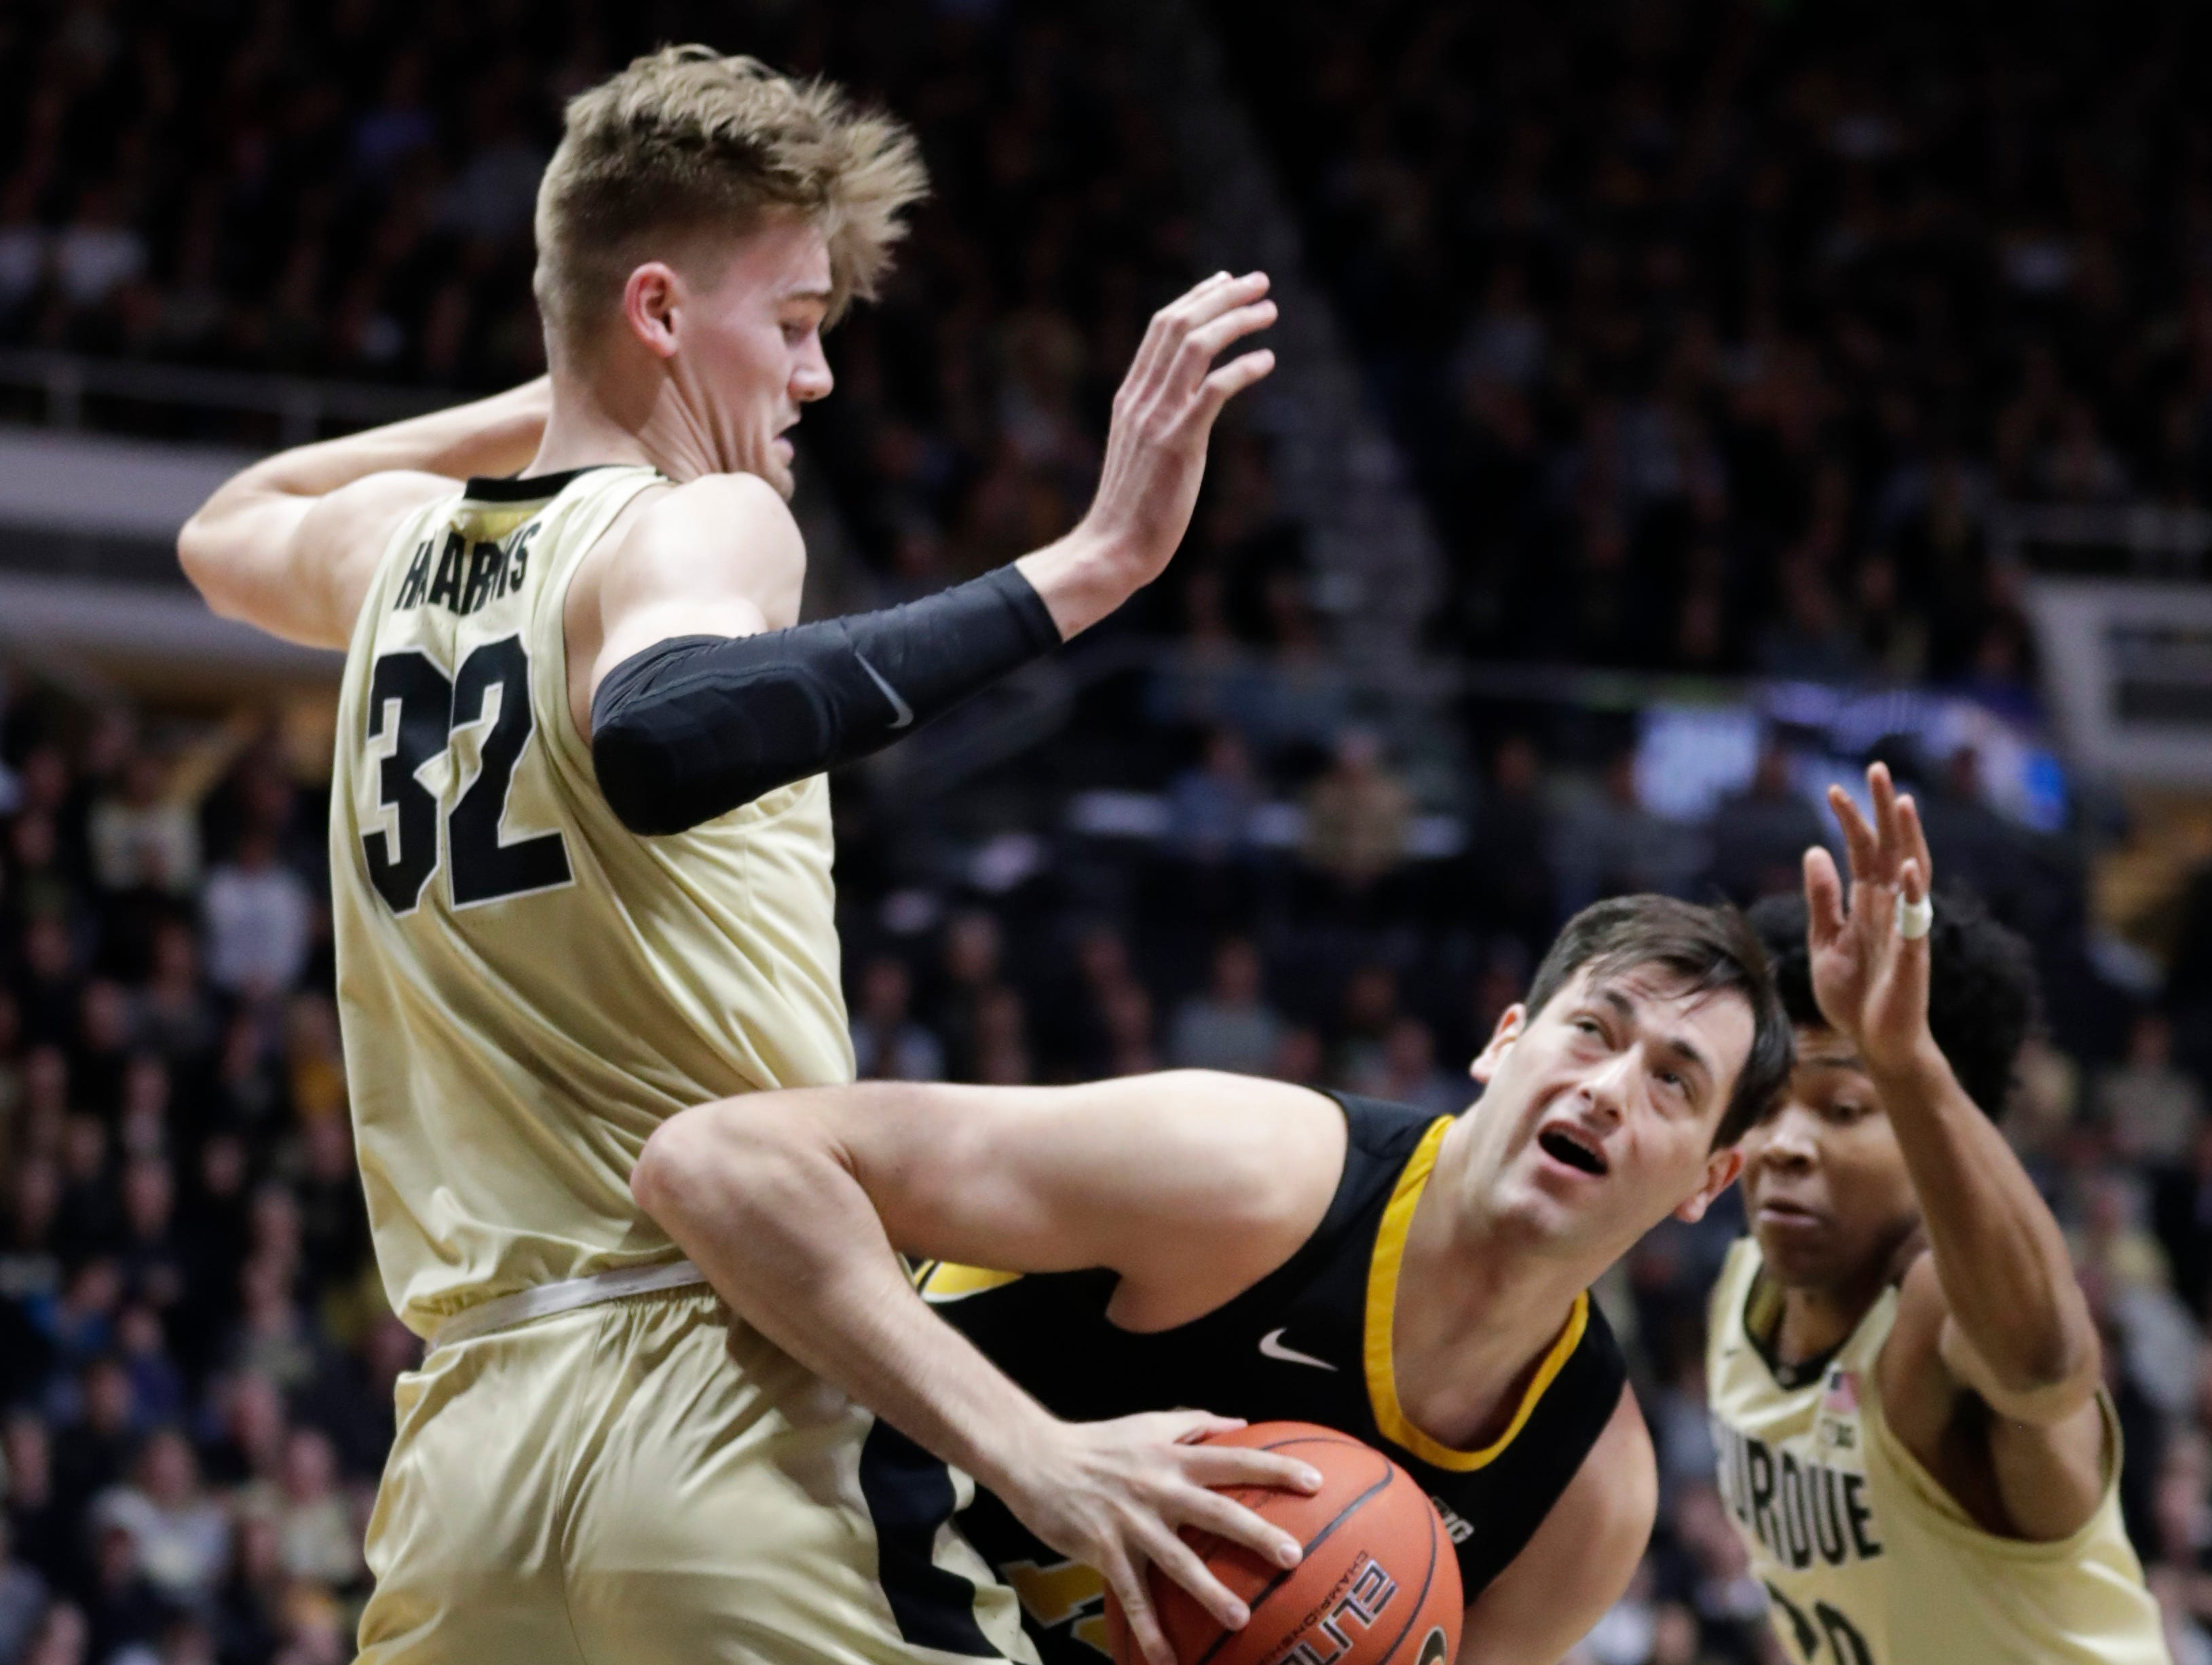 Iowa forward Ryan Kriener (15) looks to shoot around Purdue center Matt Haarms (32) during the first half of an NCAA college basketball game in West Lafayette, Ind., Thursday, Jan. 3, 2019.